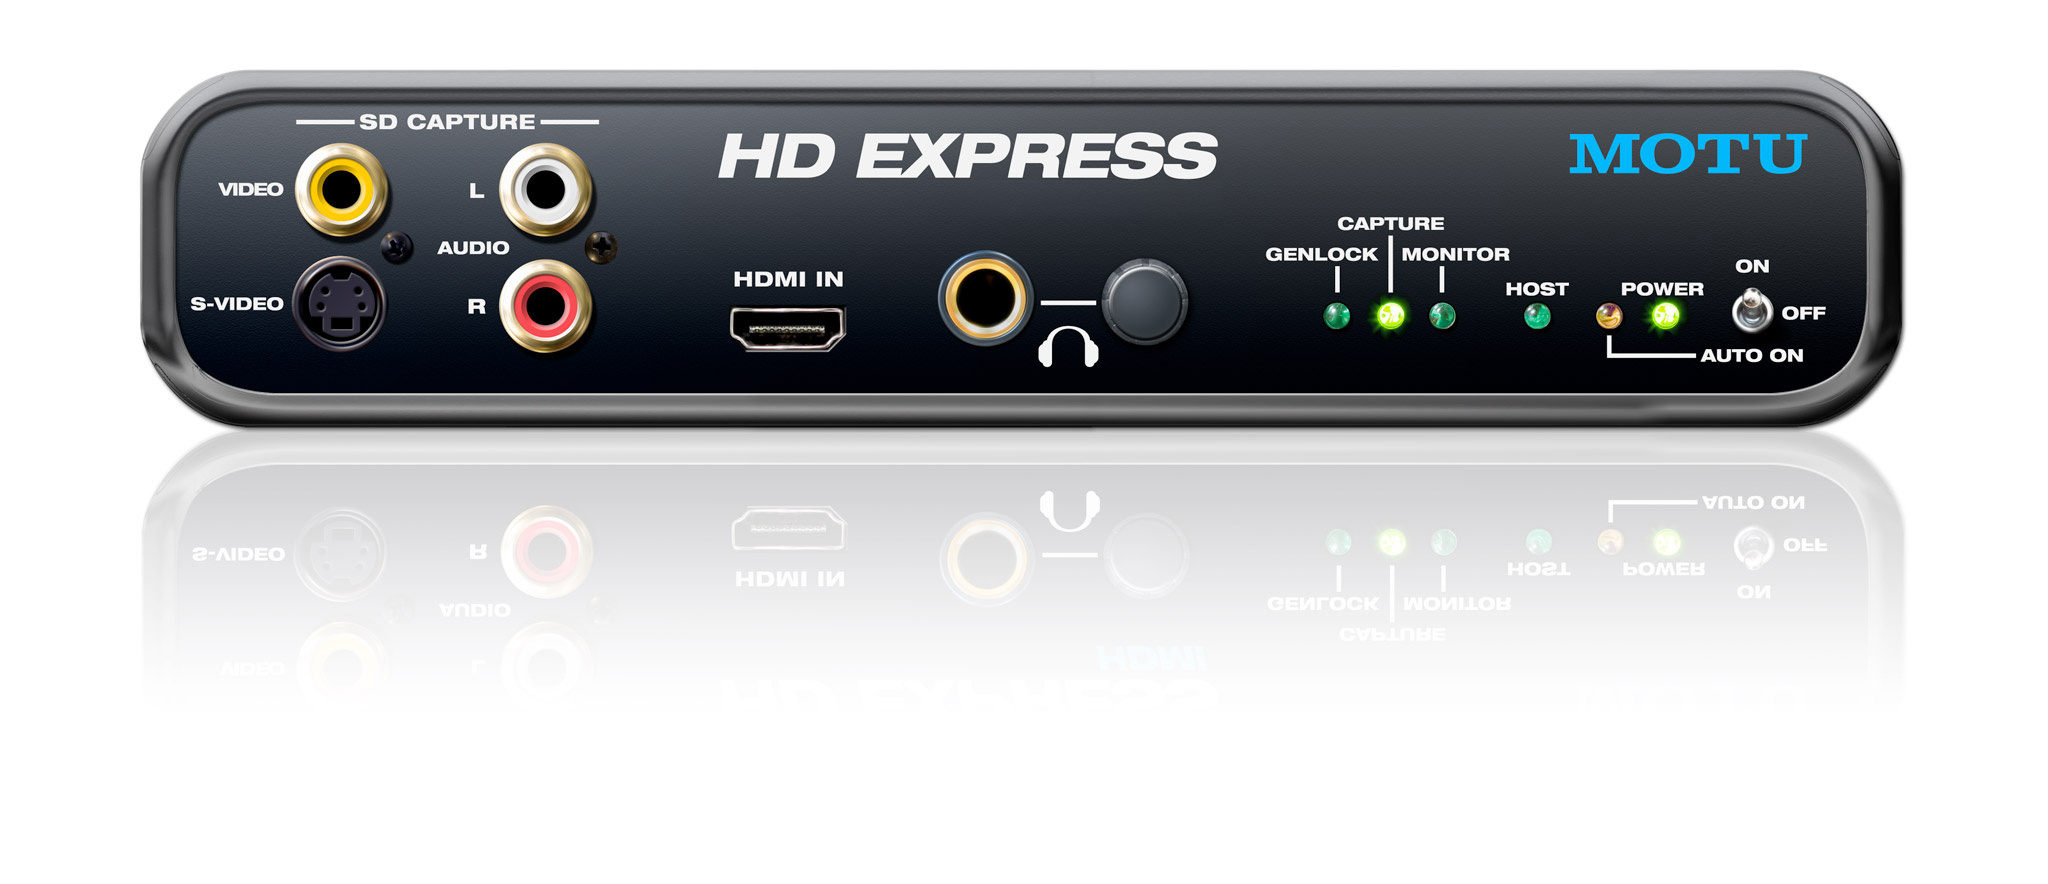 MOTU com - HD Express Overview